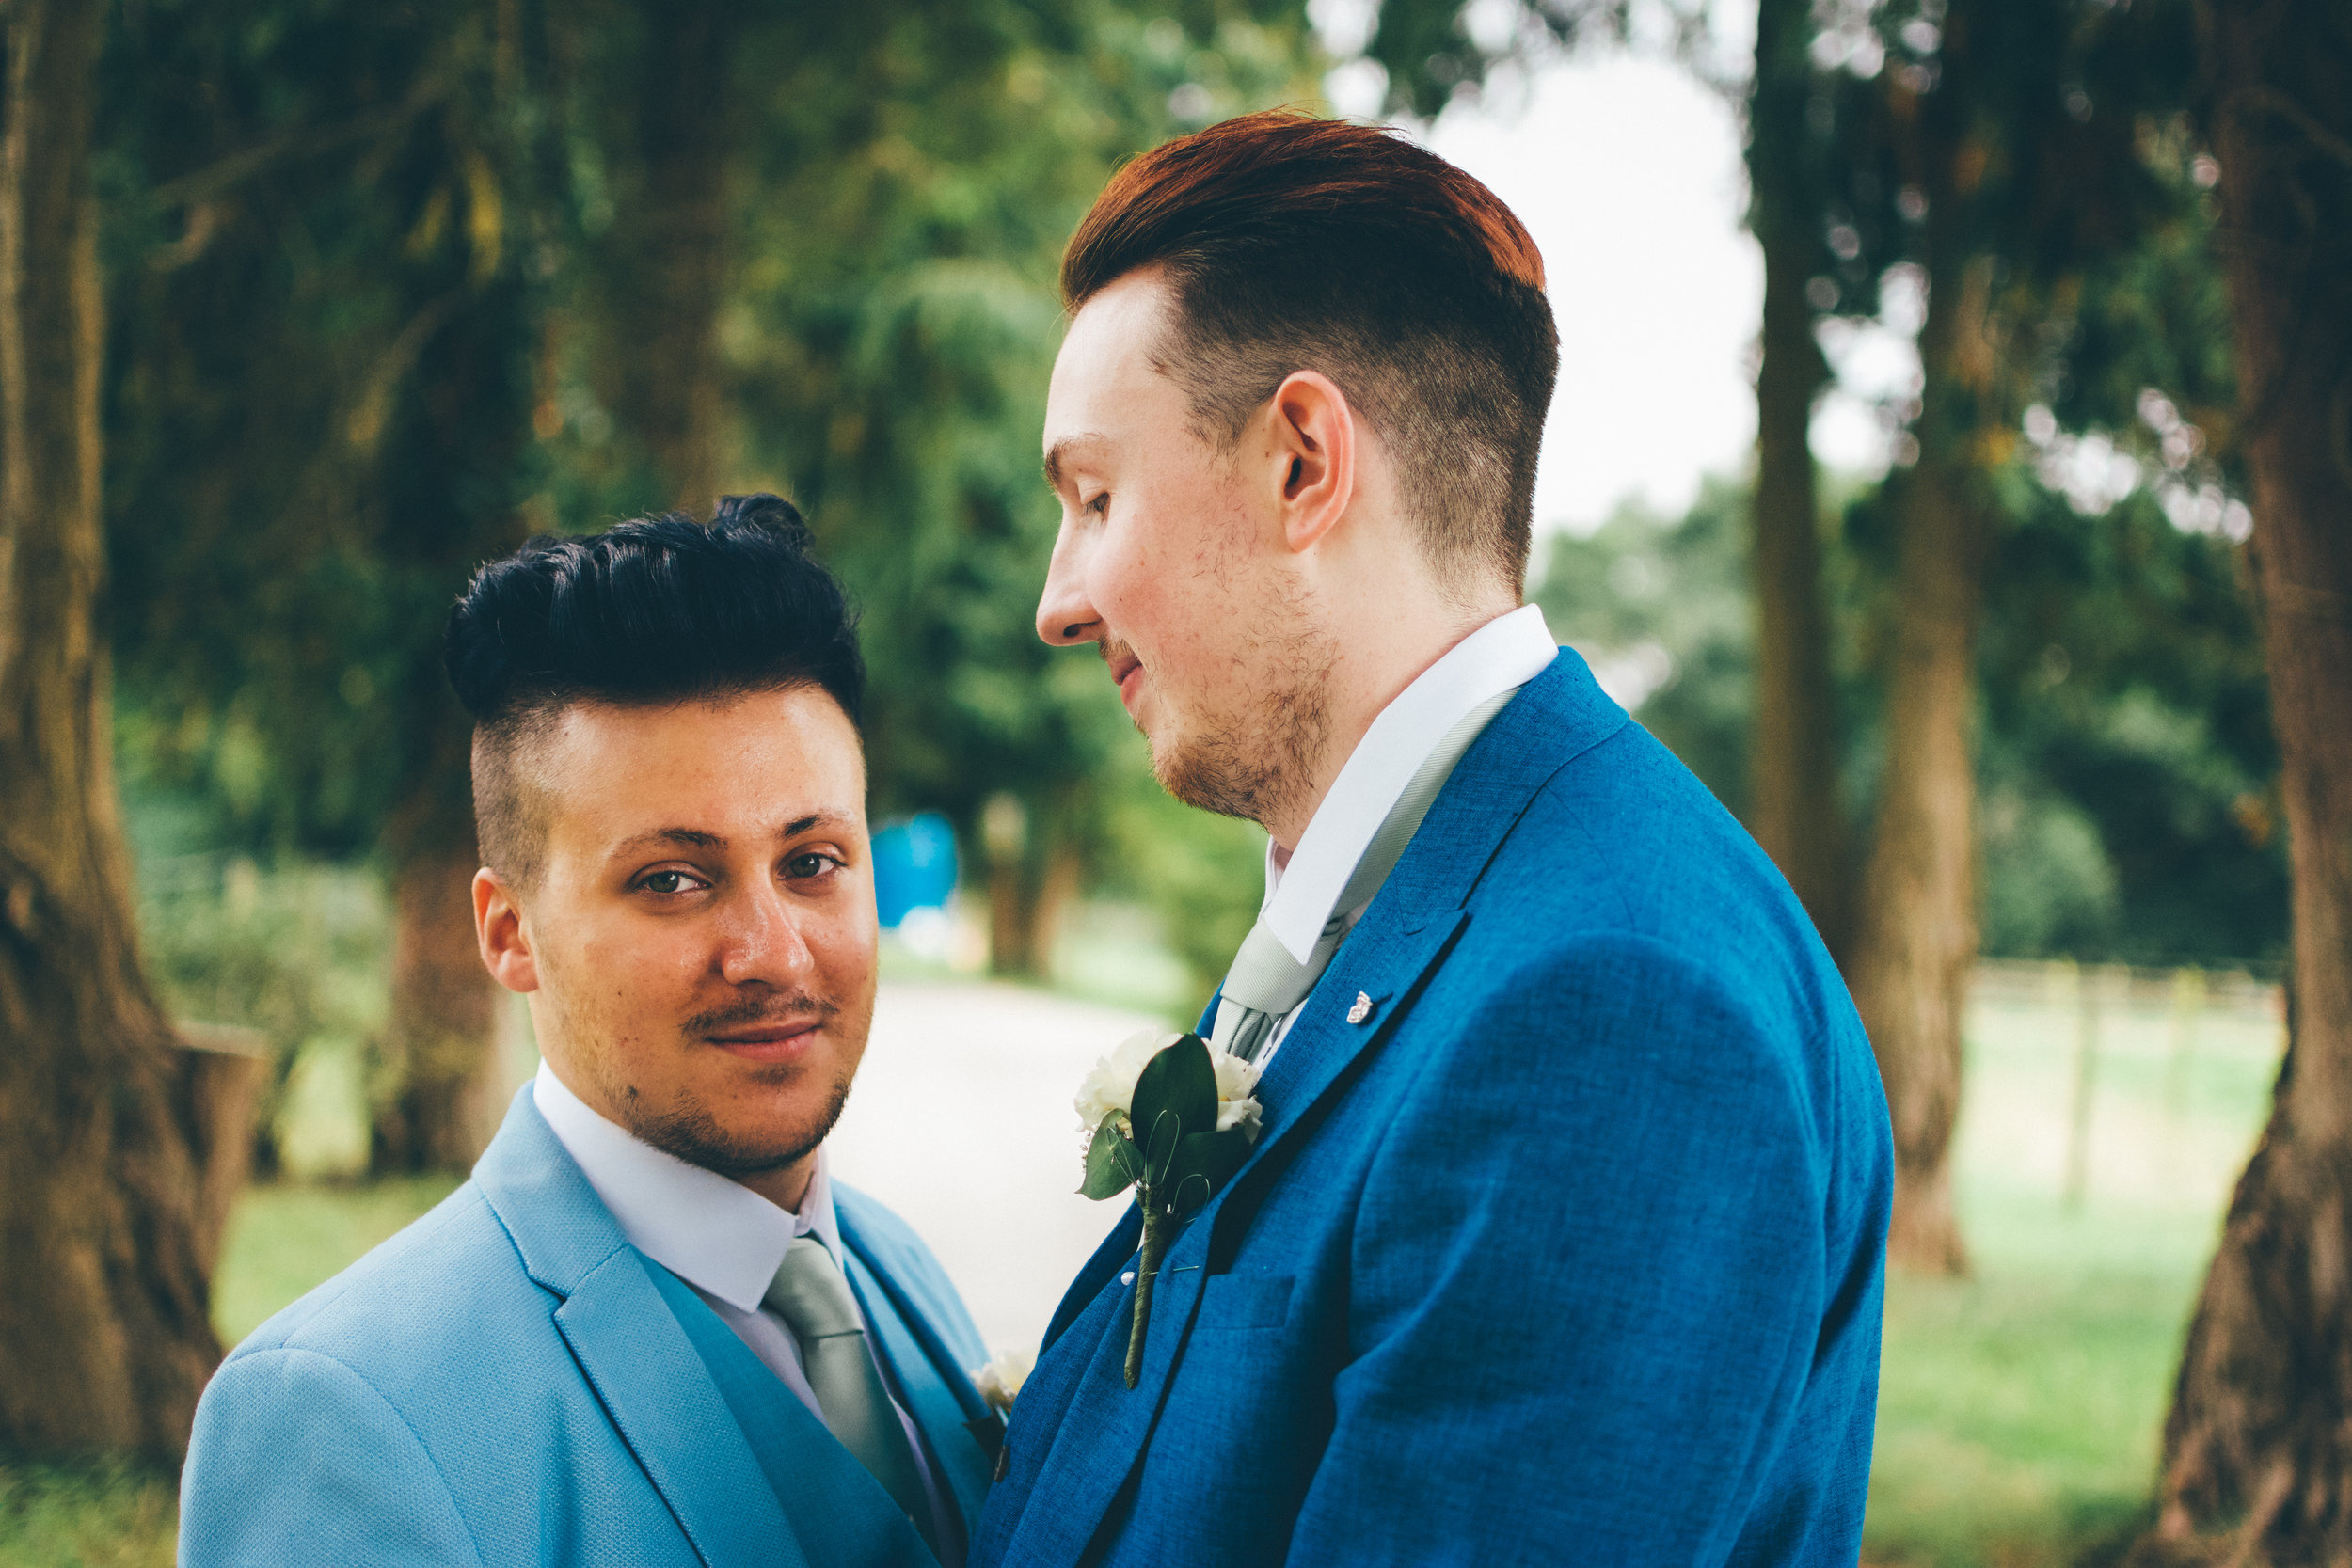 """- """"Richard did our wedding! His first LGBT Wedding and we were honoured to have him picture our day! He captured every element we wanted and more! And we have developed an amazing friendship with him and the company too! Book this man! You'd be an idiot if you didn't.""""- Jason+George, August 2017"""